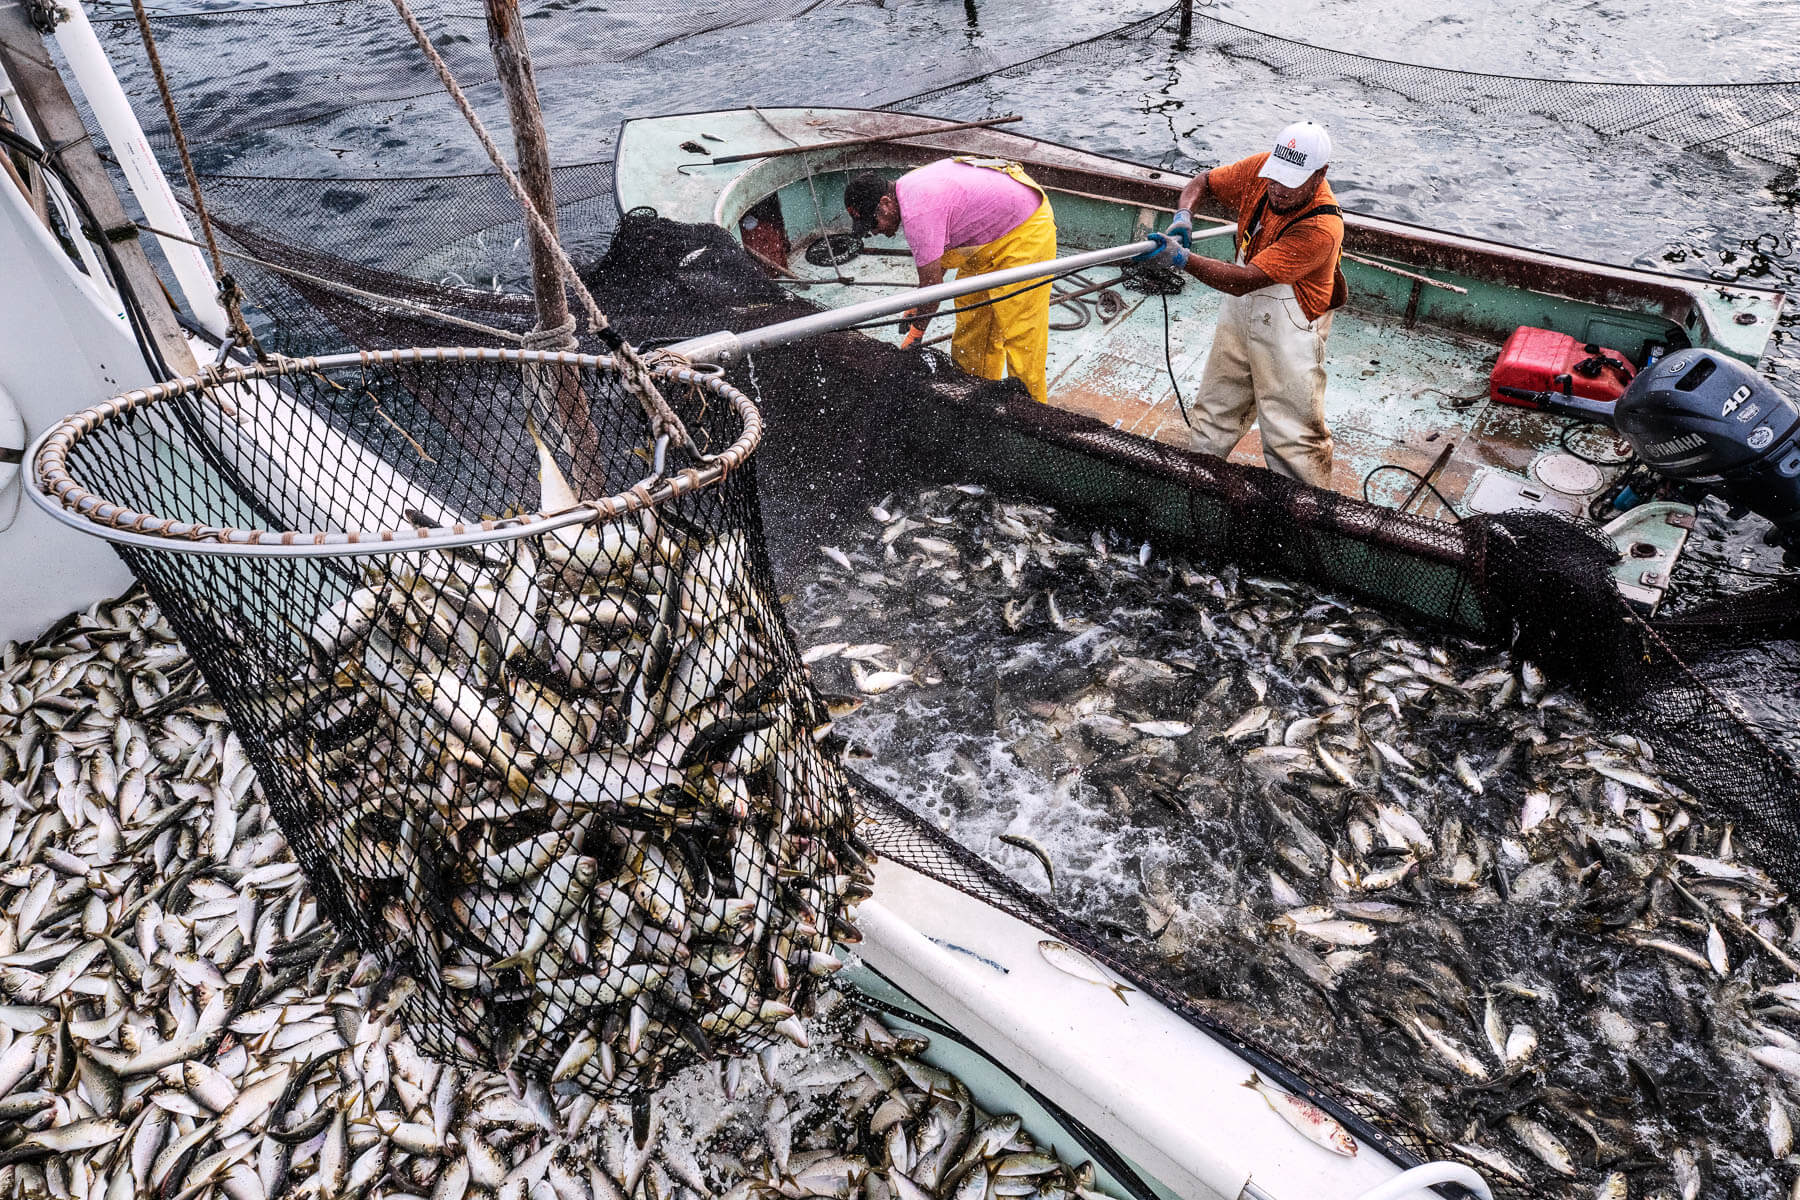 A load of fish transfers between boats